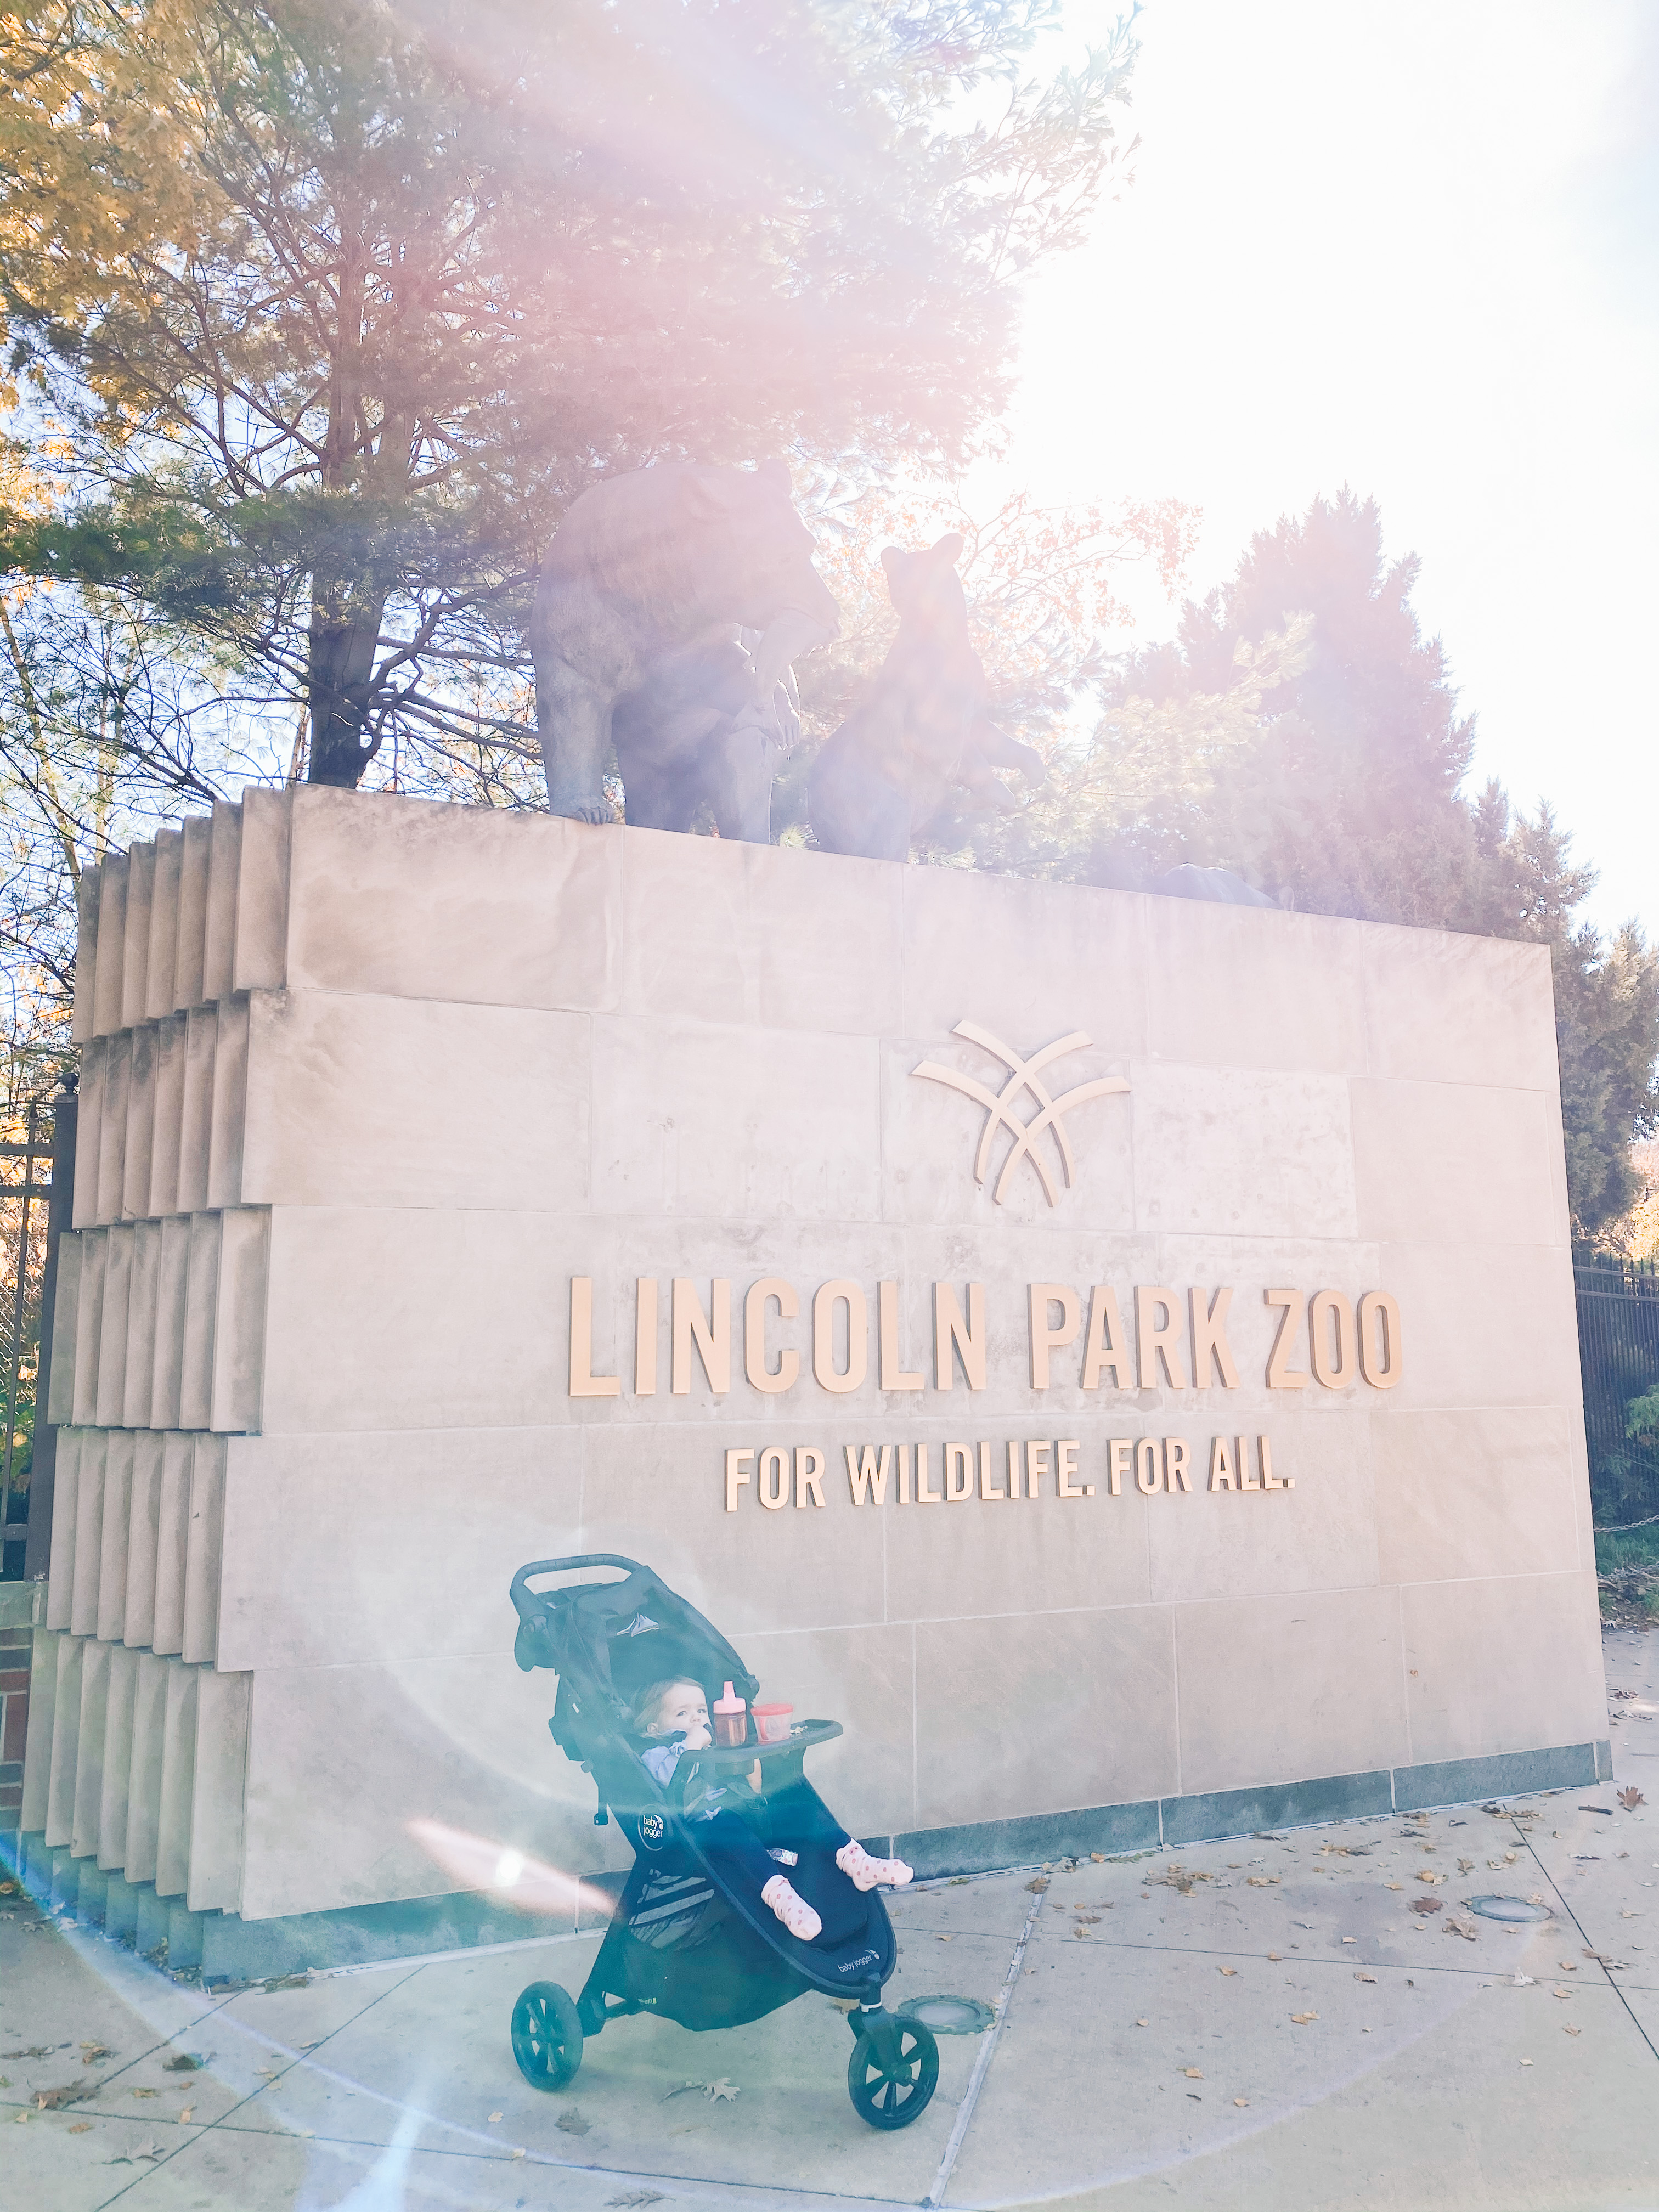 Took Lucy to the Lincoln Park Zoo